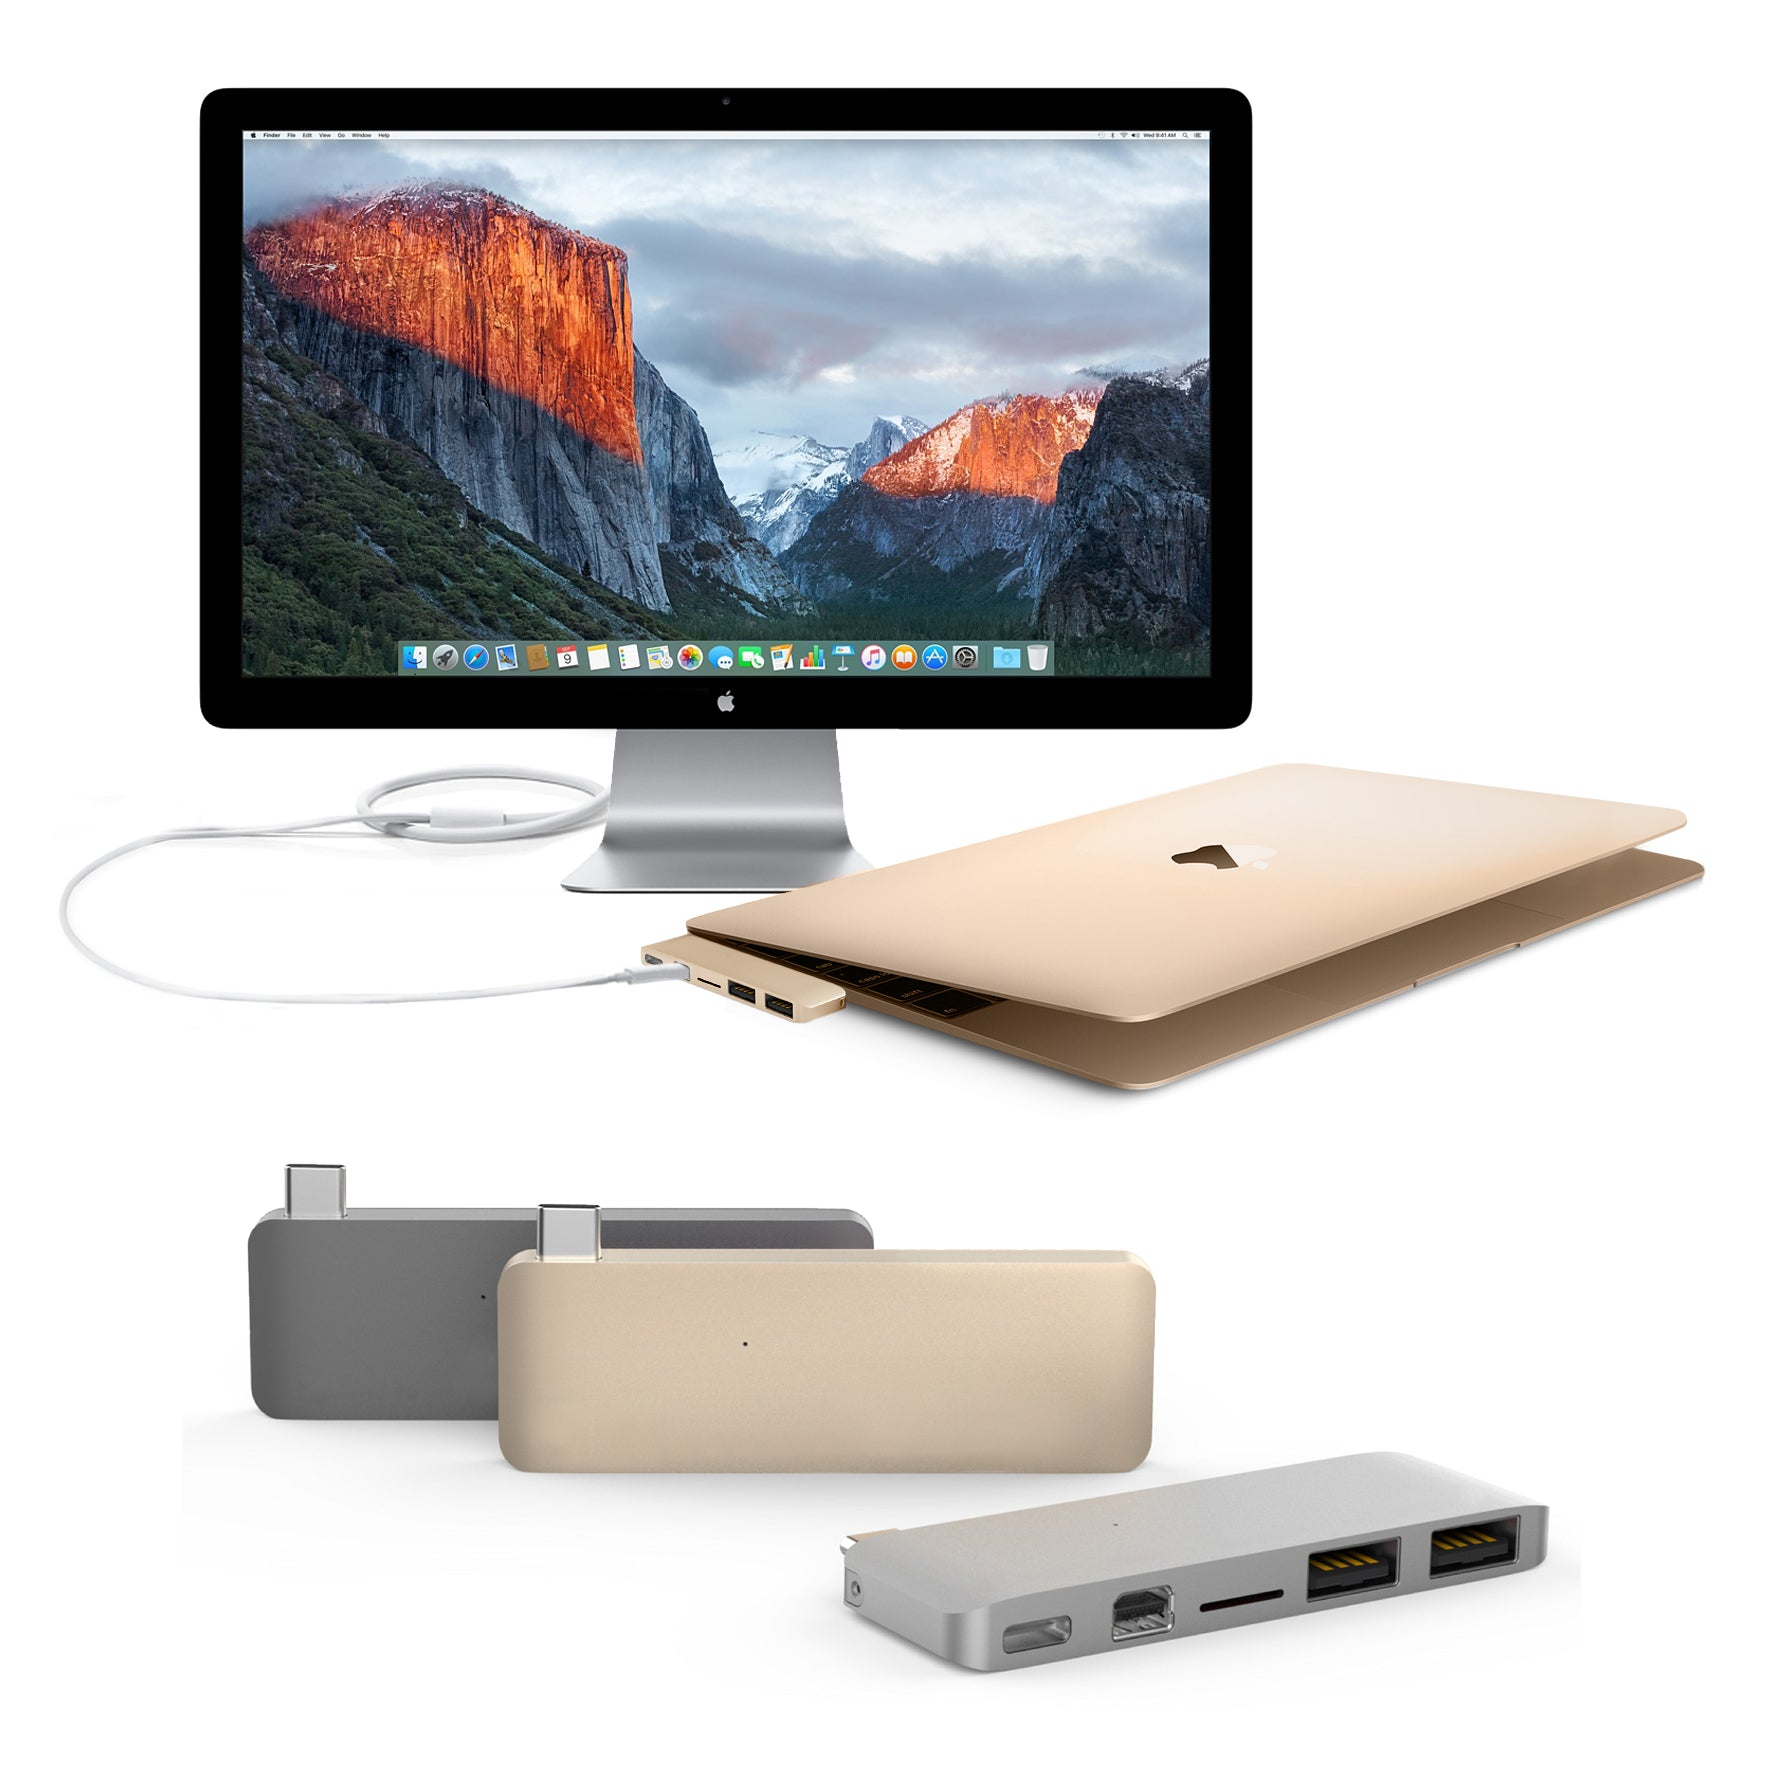 HyperDrive USB Type-C Hub with Mini DisplayPort